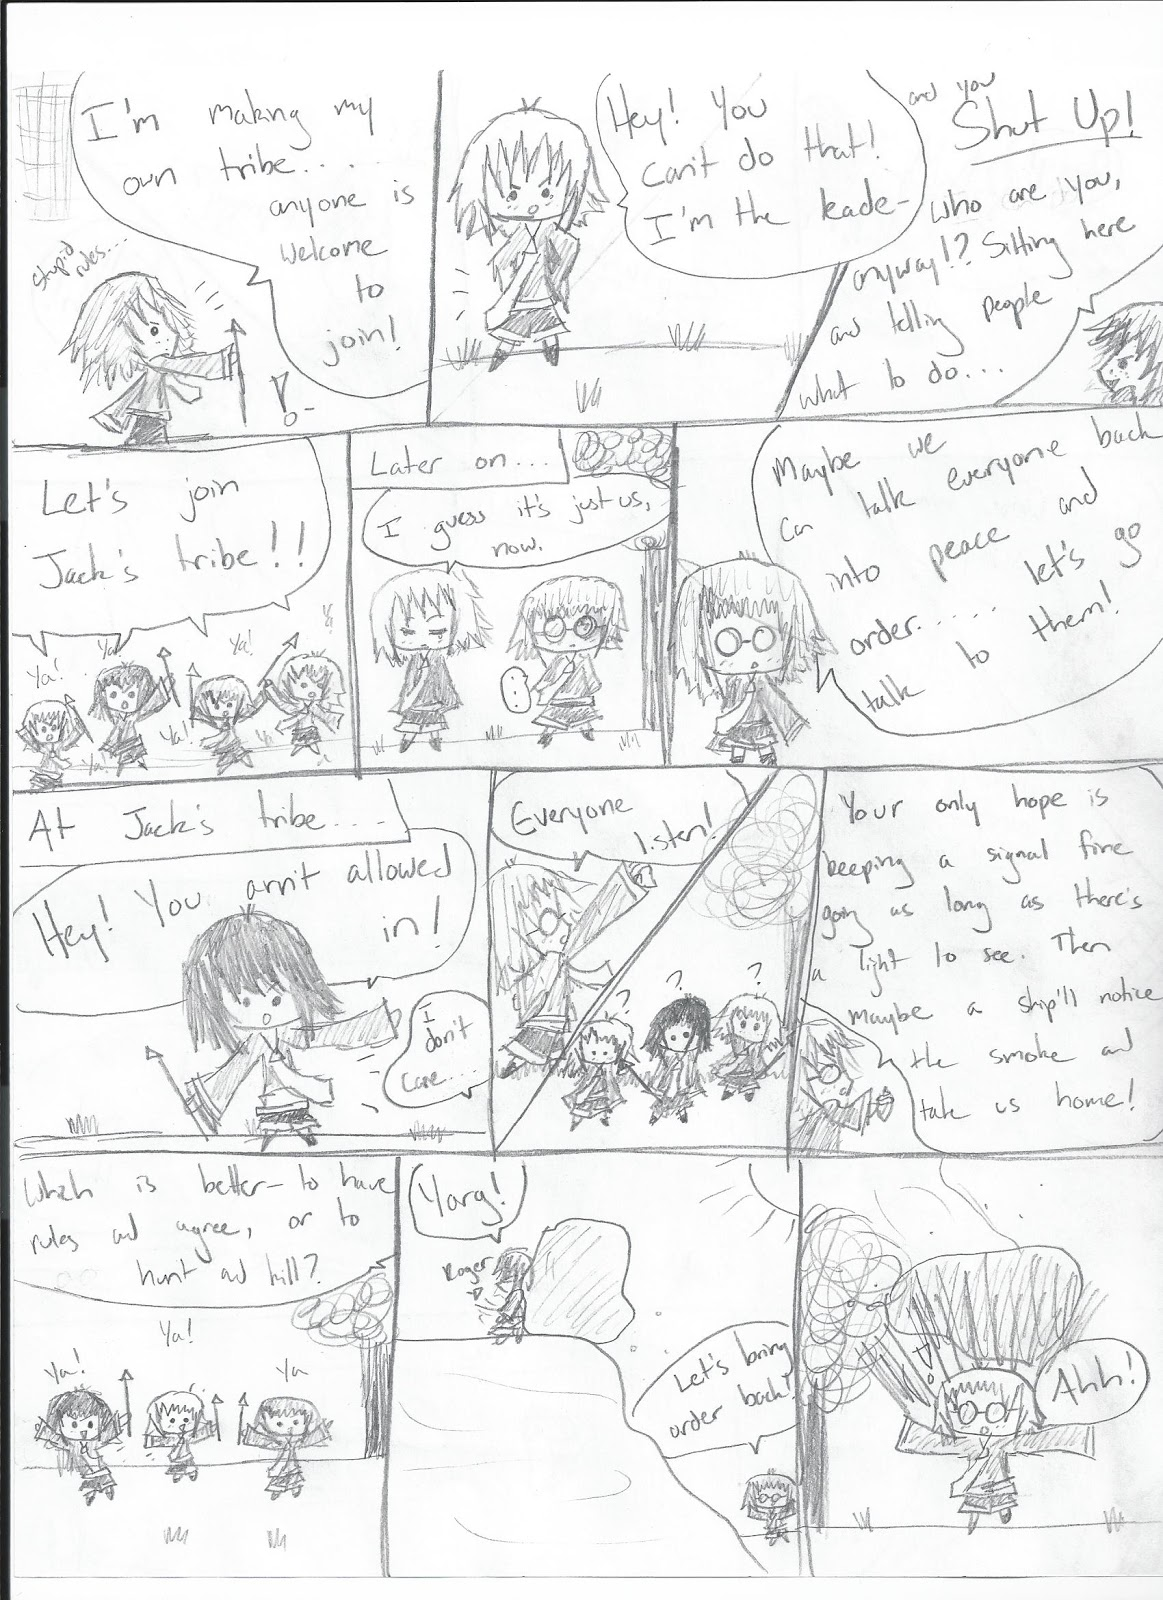 Poppy and Vicki:D: A 'Lord of the Flies' comic I made for